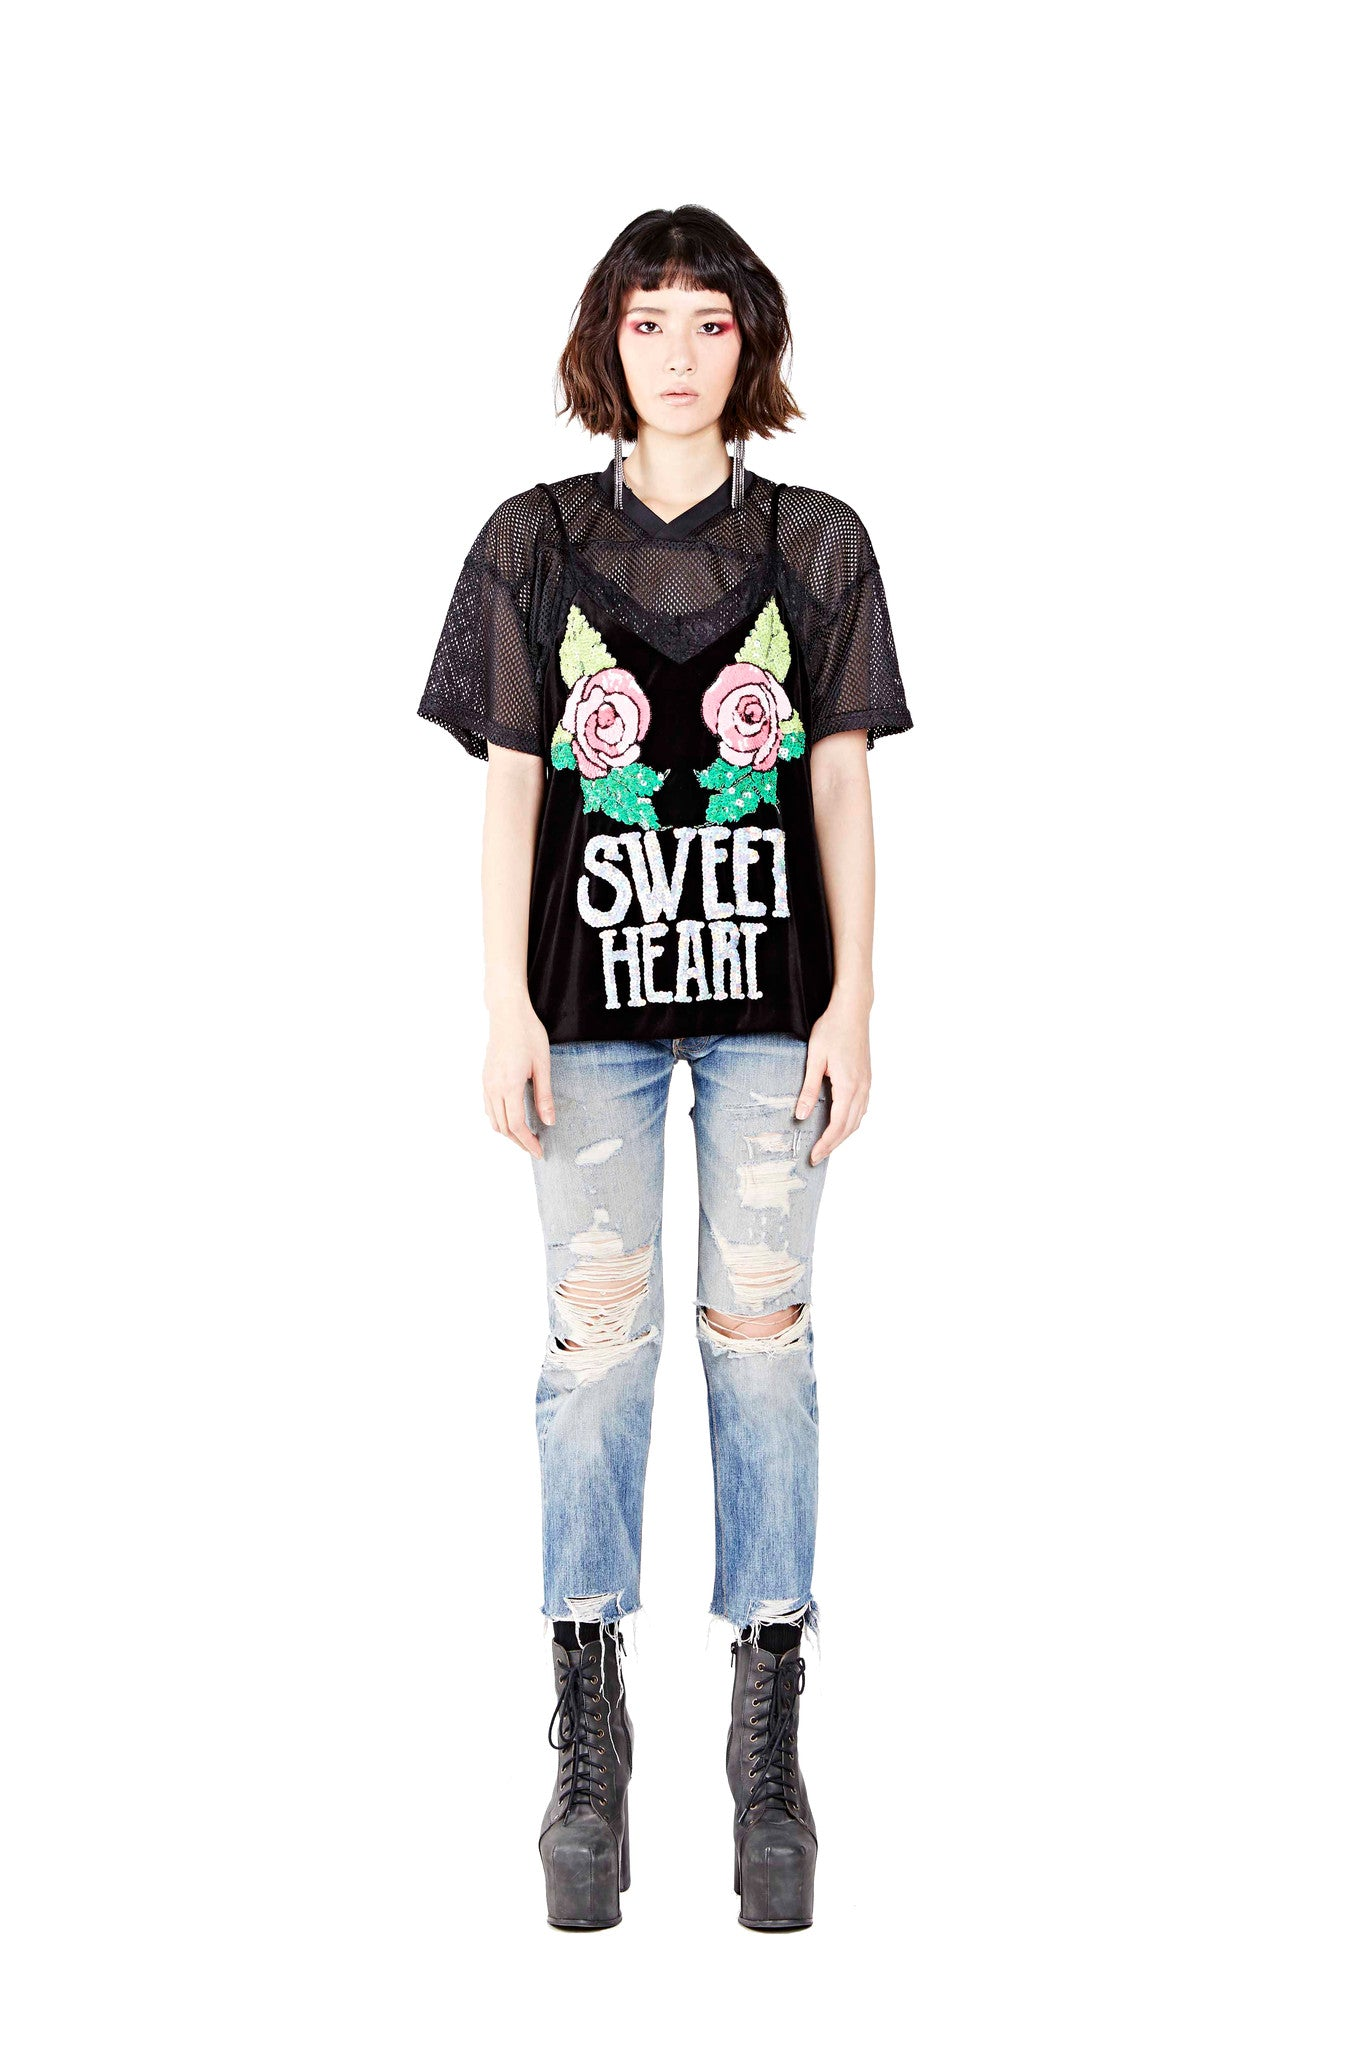 Sweet Heart Top - Black - I LOVE DIY by Panida